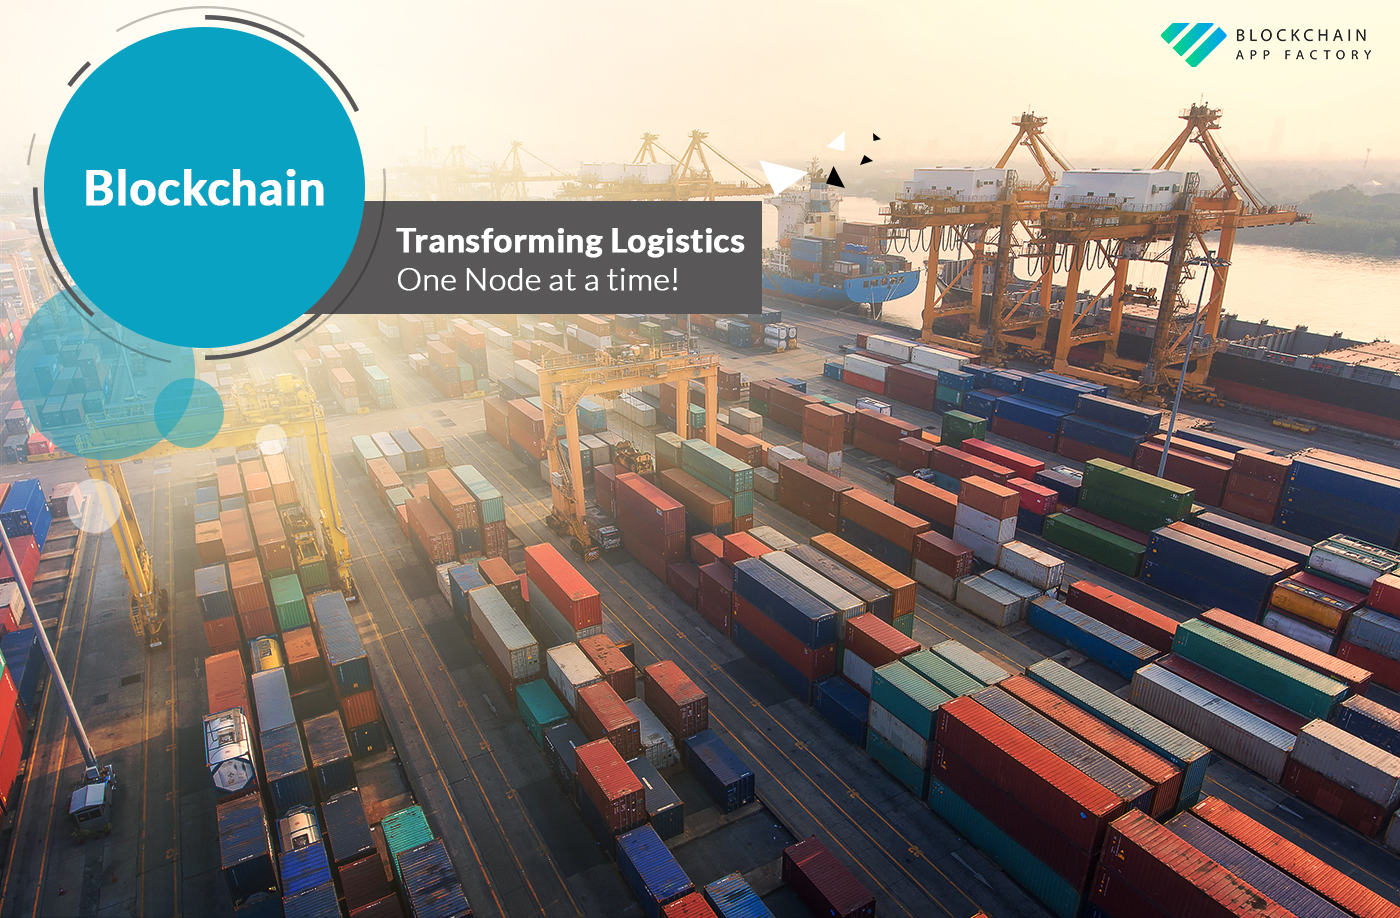 Transforming Logistics and Supply Chain in Blockchain